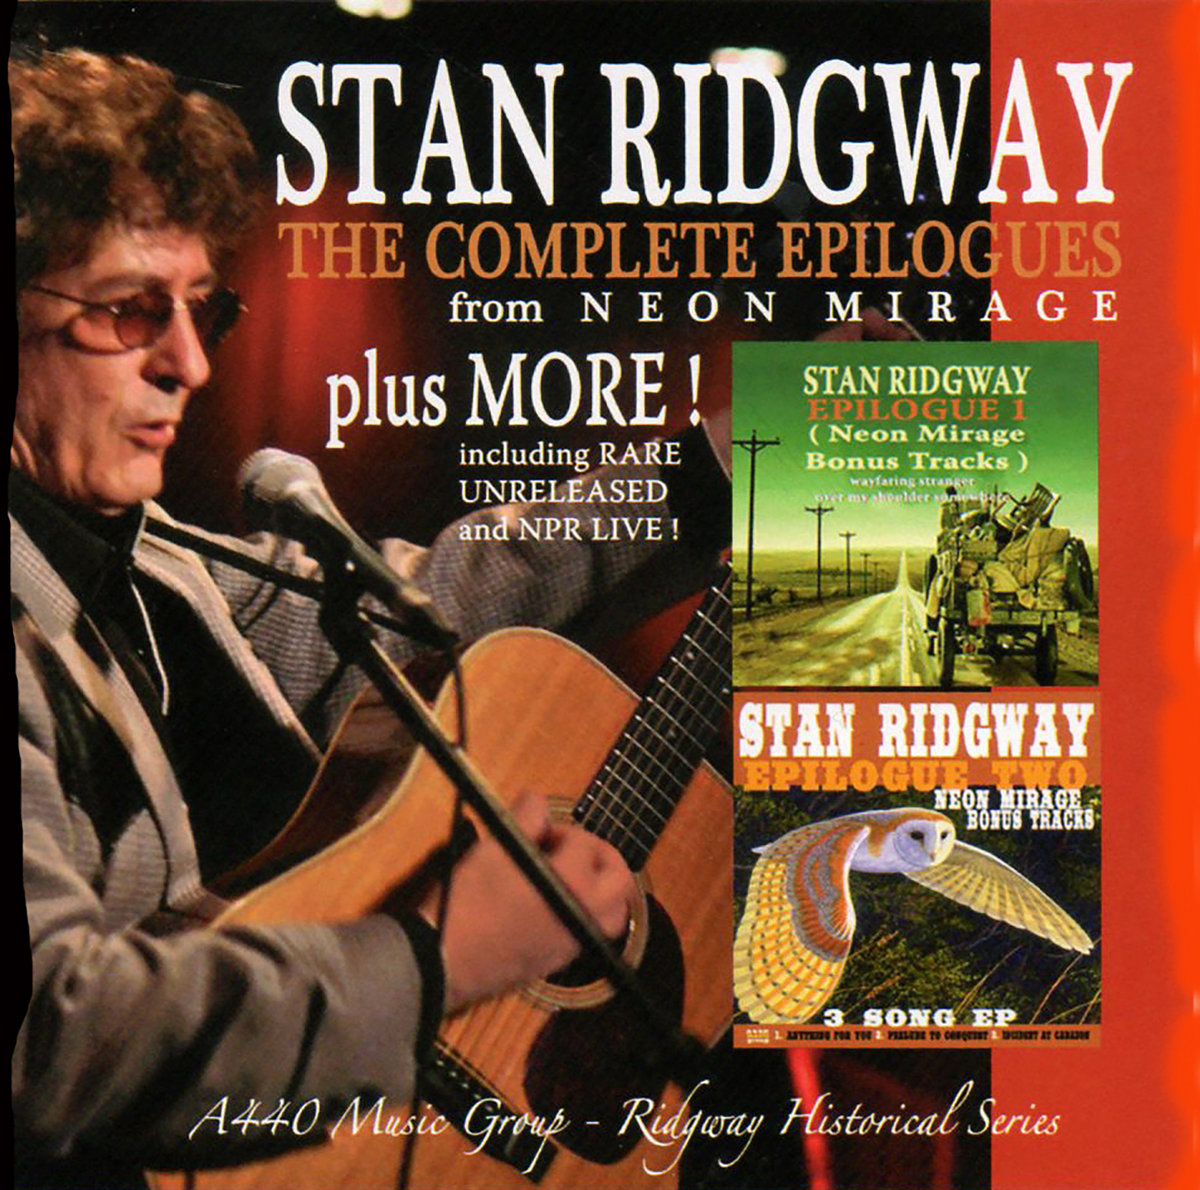 125978afc4 Camouflage (live). from The Complete Epilogues by Stan Ridgway